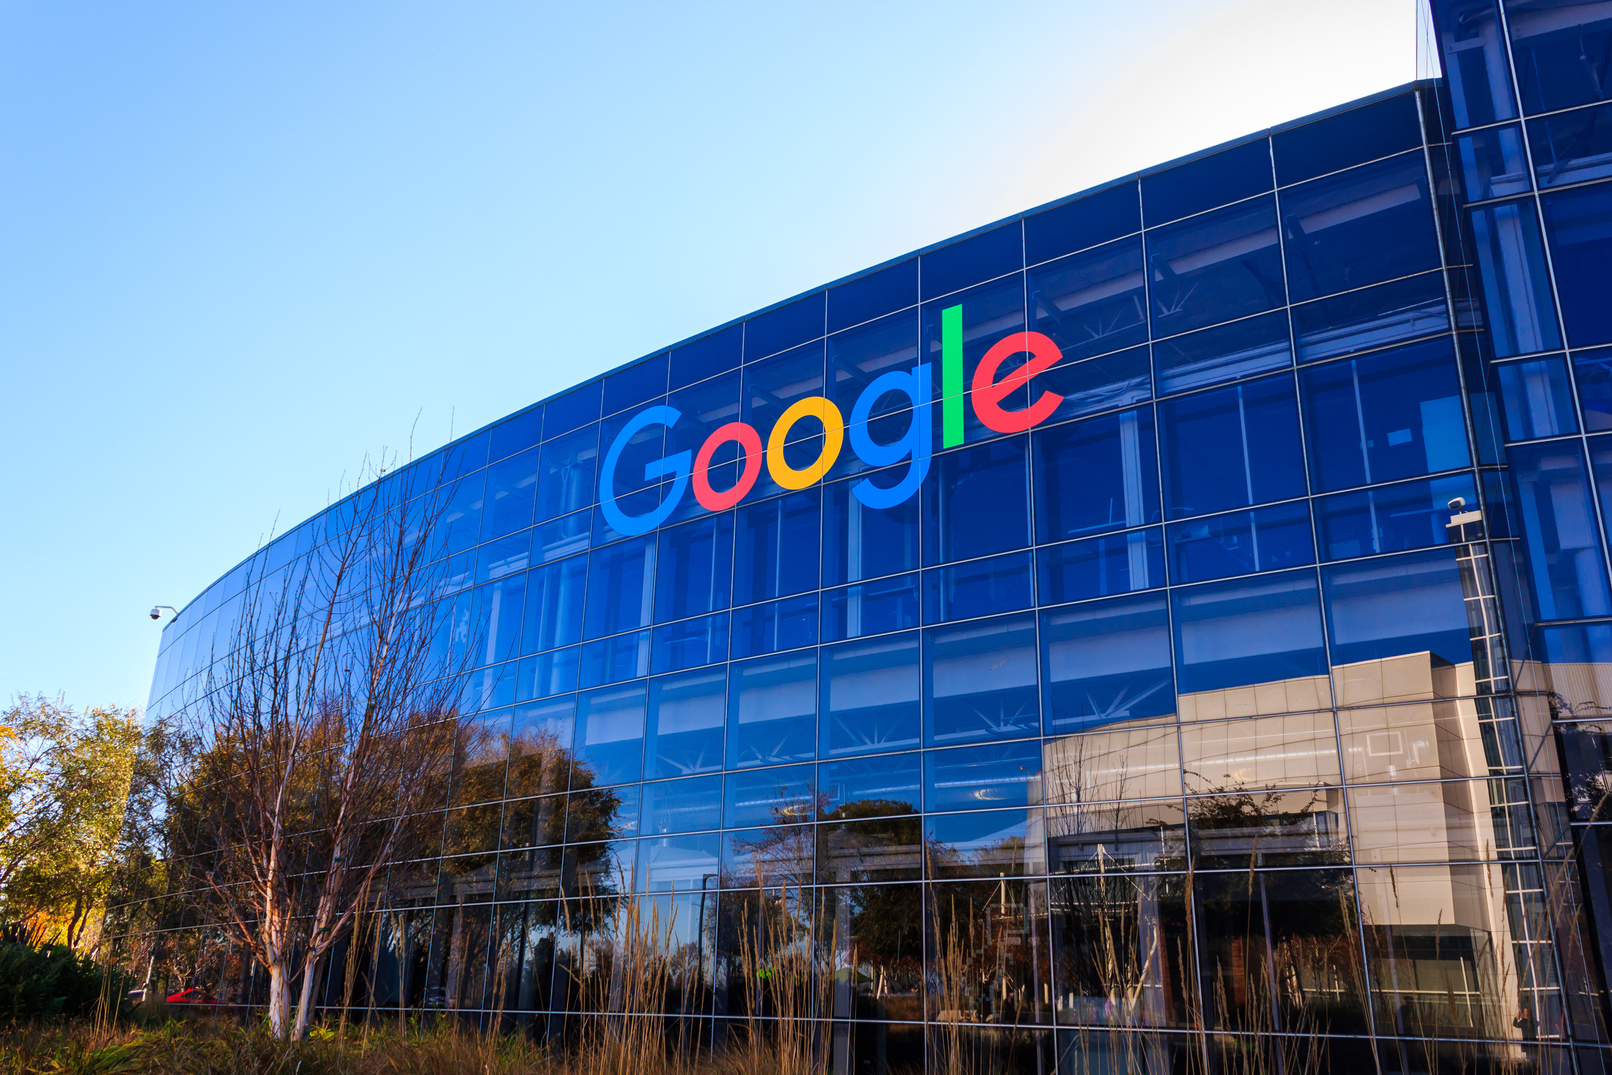 Google Cannot Restrict Employees' Free Speech According to the Government